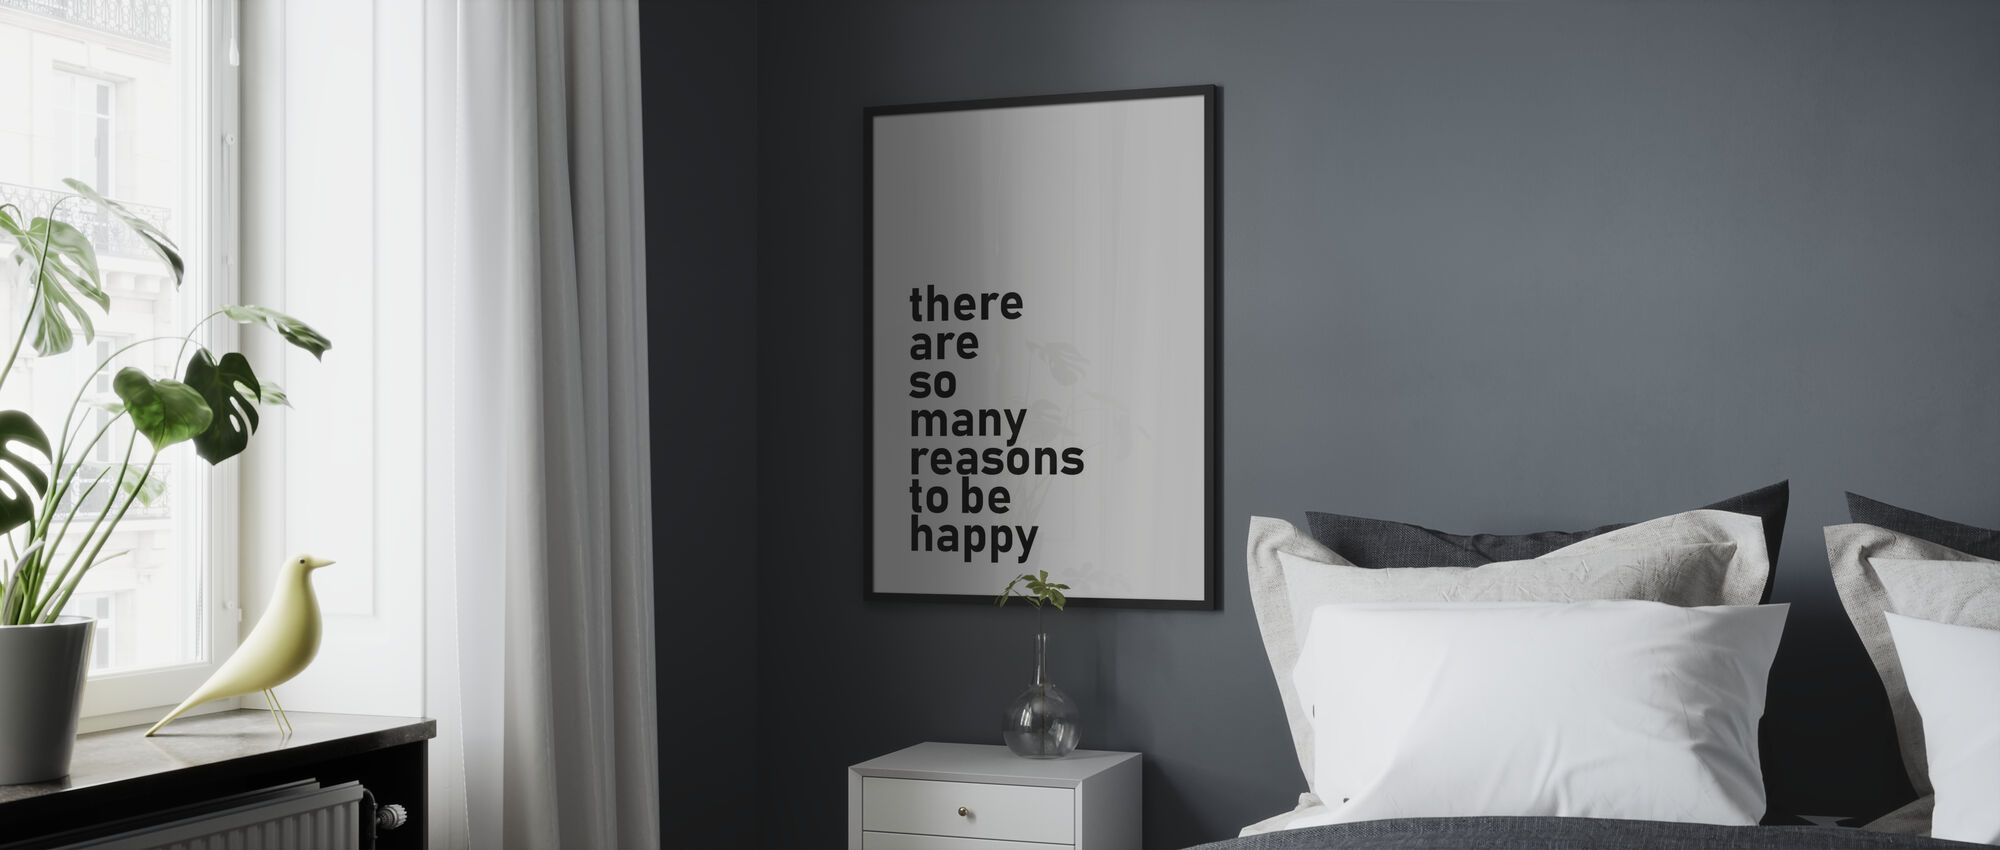 Reasons to be Happy - Framed print - Bedroom